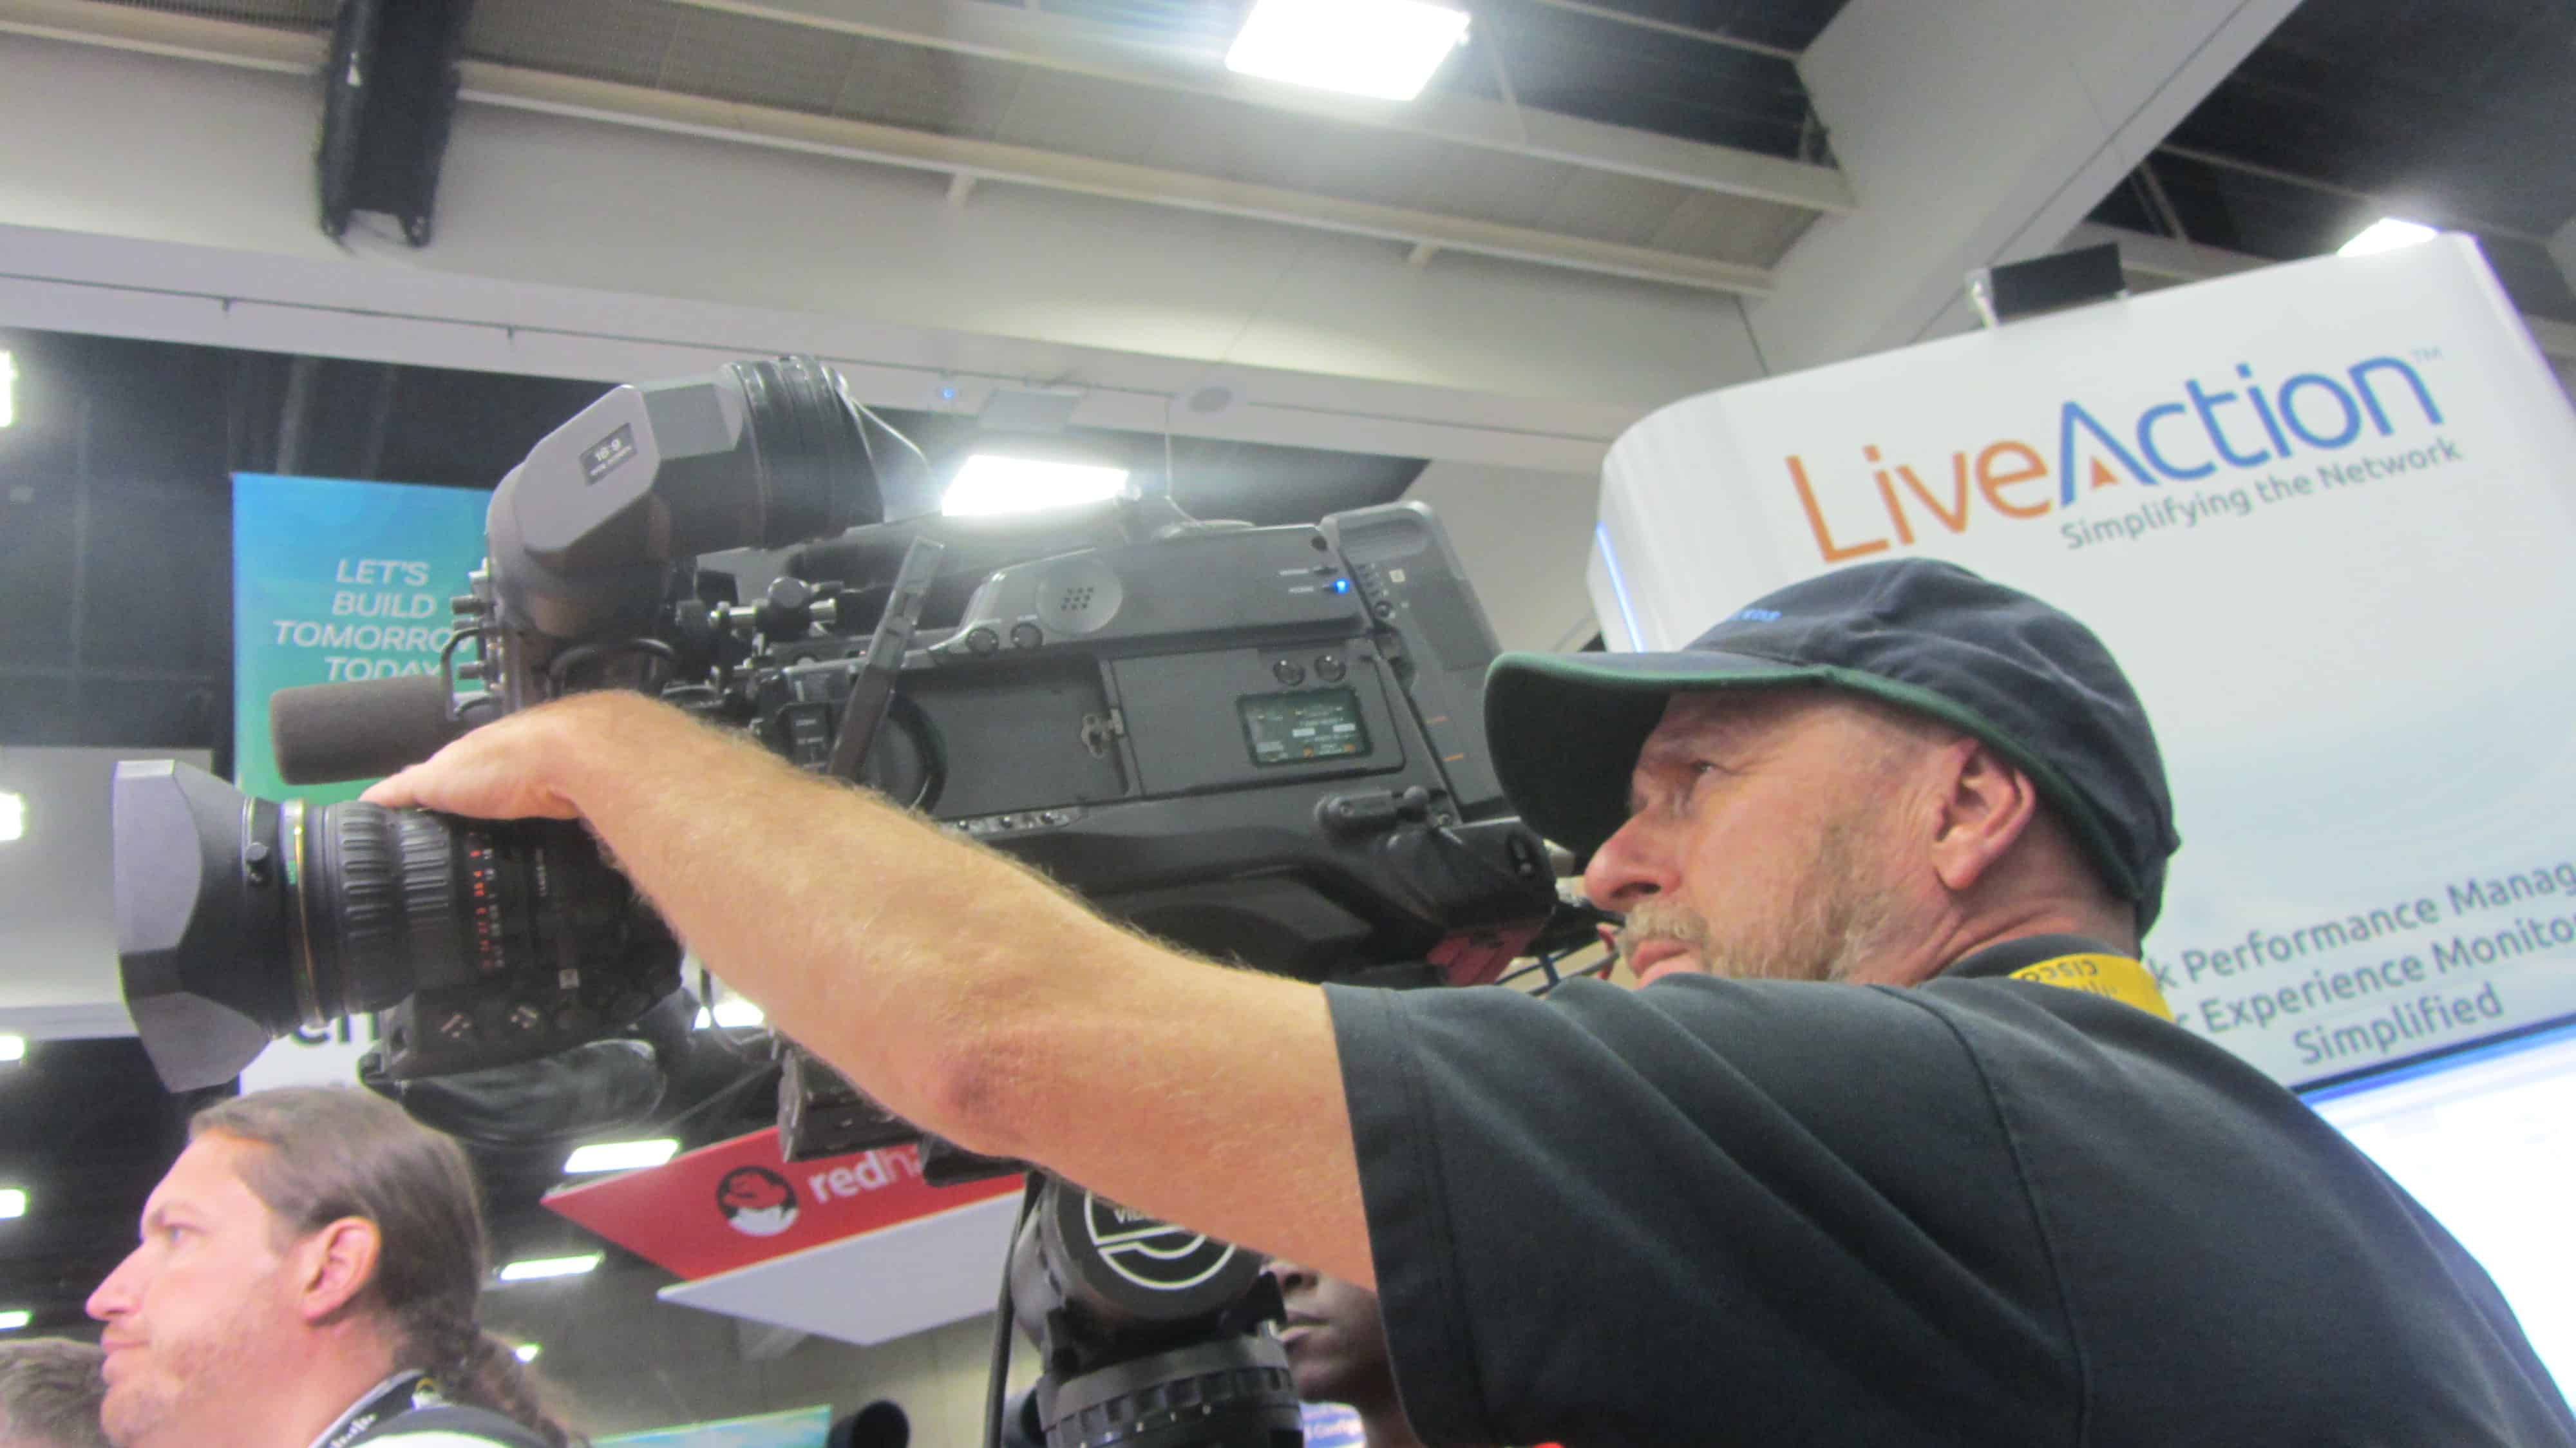 Director of Photography Camera Crews Mark Schulze Videotapes Convention Technology